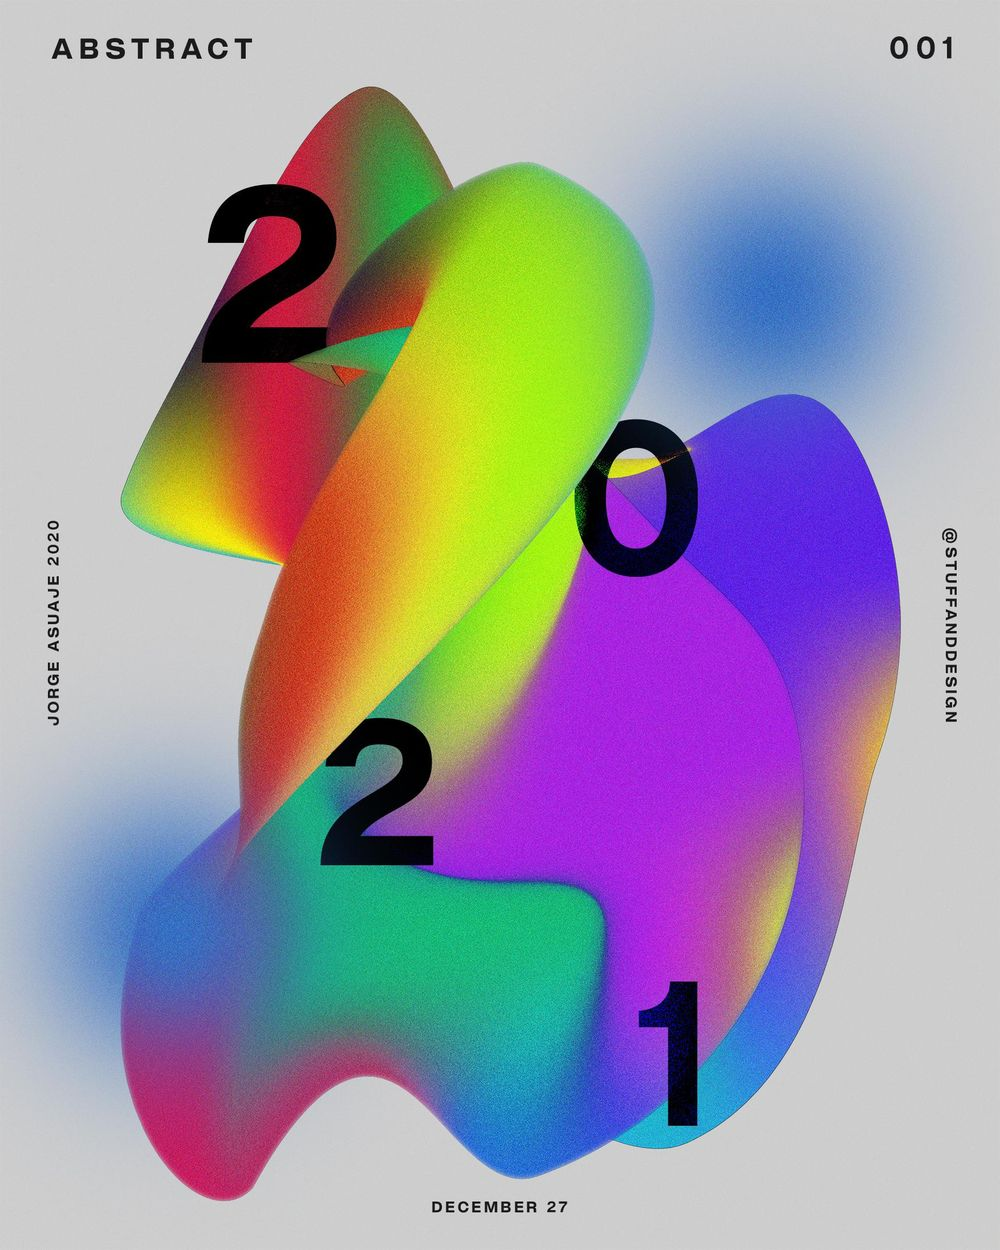 Gradient Poster - image 1 - student project